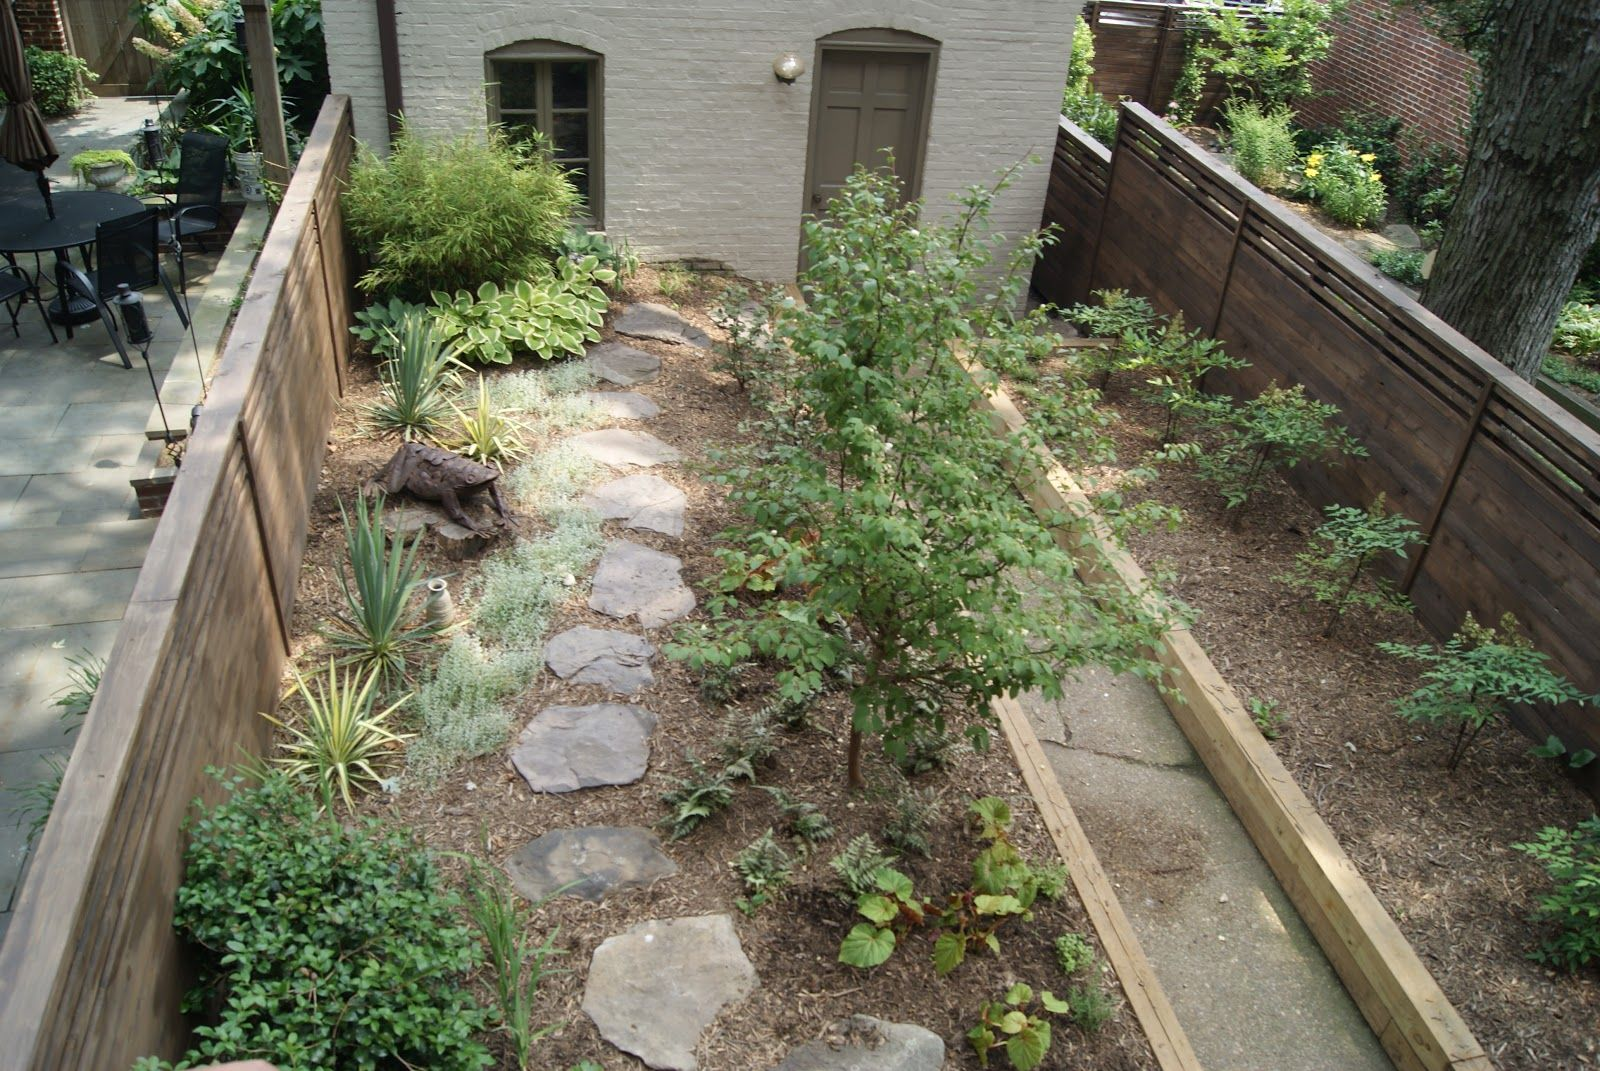 Japanese Garden Design Principles   Google Search   Note Combination Of  Linear On The Right And